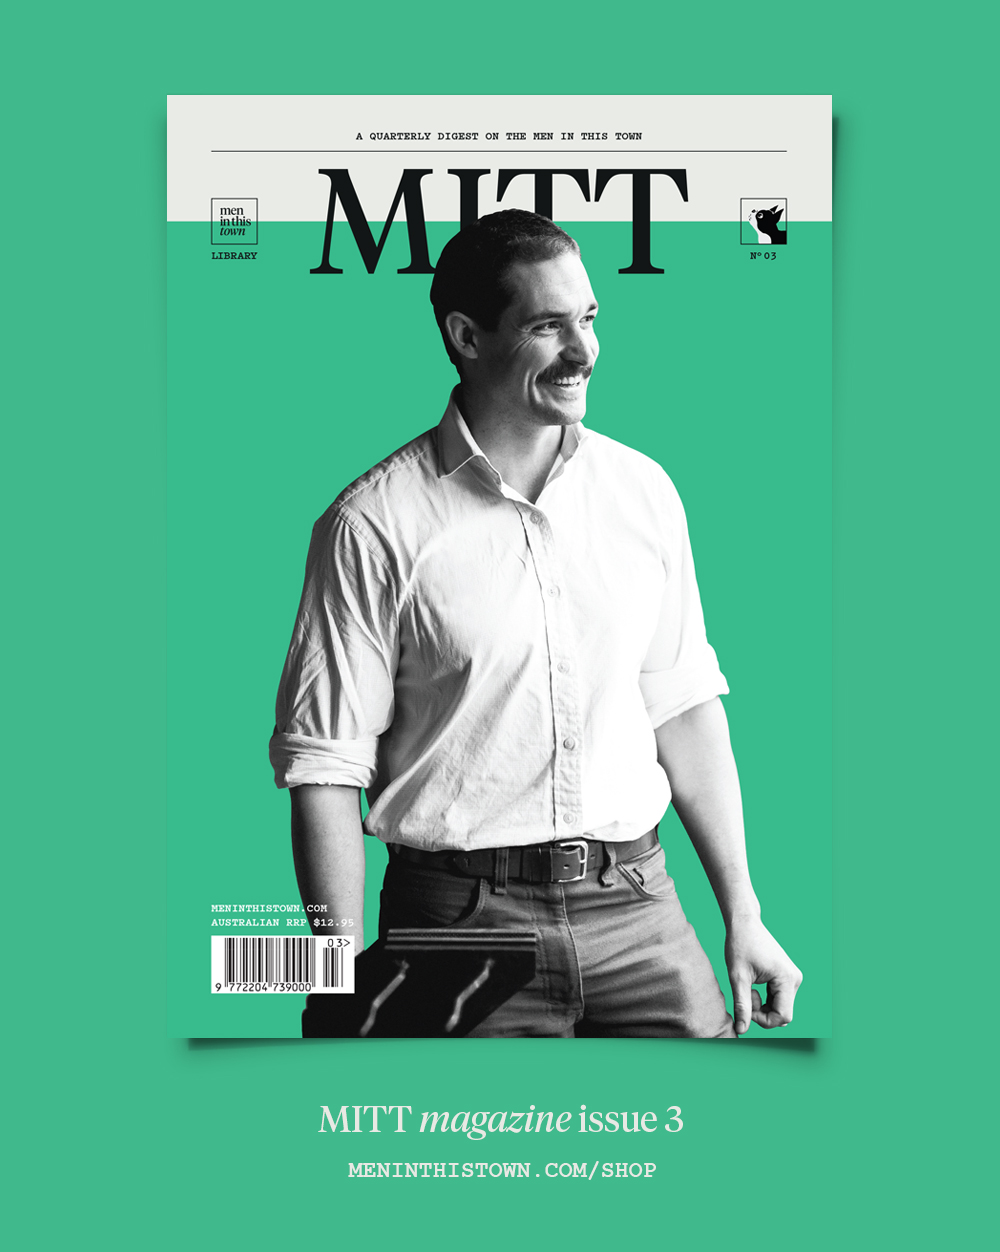 It's finally here, MITT issue 3 is now available to order at The MITT Mrkt! To celebrate, we're offering ALL issues with free shipping worldwide!  The third printed issue of MITT includes twelve new features on man made goods from around the world. Interviews with Felix Chan of New Albion Sports in Sydney, Melbourne based leathersmith Tom Farrah (our cover man), Grey Fox menswear blogger David Evans, foodie Gabriel Cabrera in Mexico and London stylist Glen Campbell. Plus written and photographic essays on a soulful night in Mississippi, a reunion between lovers, experiments with bee-sting cream, summer fashion editorial shot somewhere in Brooklyn, a comic take at being #menswear and a look at menswear inspired women's street style from Tokyo, London, Paris, New York,  Madrid and Melbourne. Thank you the amazing contributors in this issue, Guy Wilkinson, Adam Baidawi, Dick Carroll, James Cameron, Brook James, Joshua Lawrence, Jefferson Piers, Andrew Geeves, Natalie Shukur, Adam Nickel and David Urbanke. Orders will start shipping early next week and will be on Austalian newsstands September 18th. If you would like to become an international stockist, please get in touch.